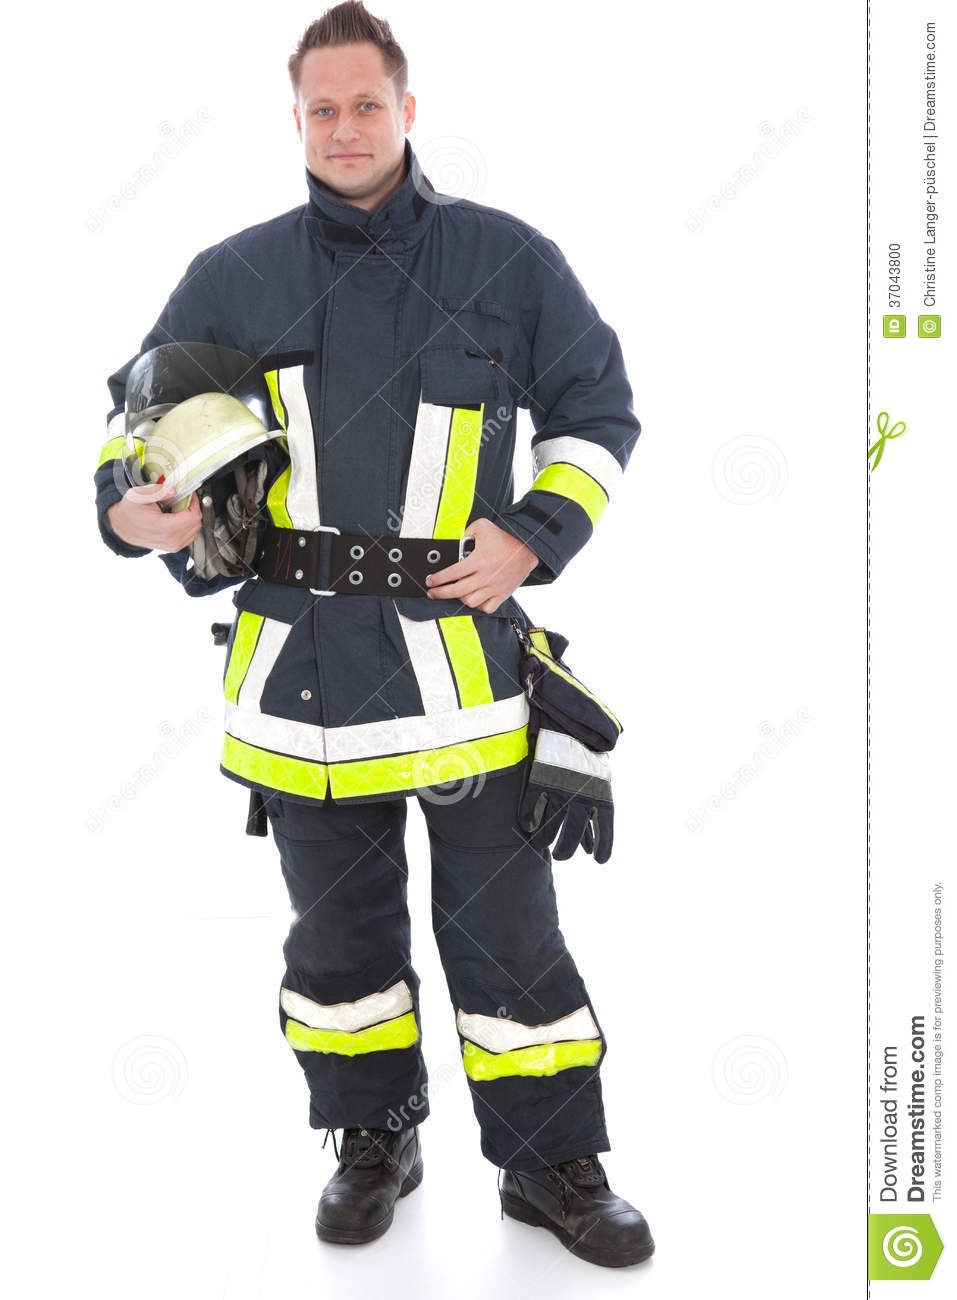 Handsome Fireman In His Uniform And Gear Stock Photo - Image: 37043800